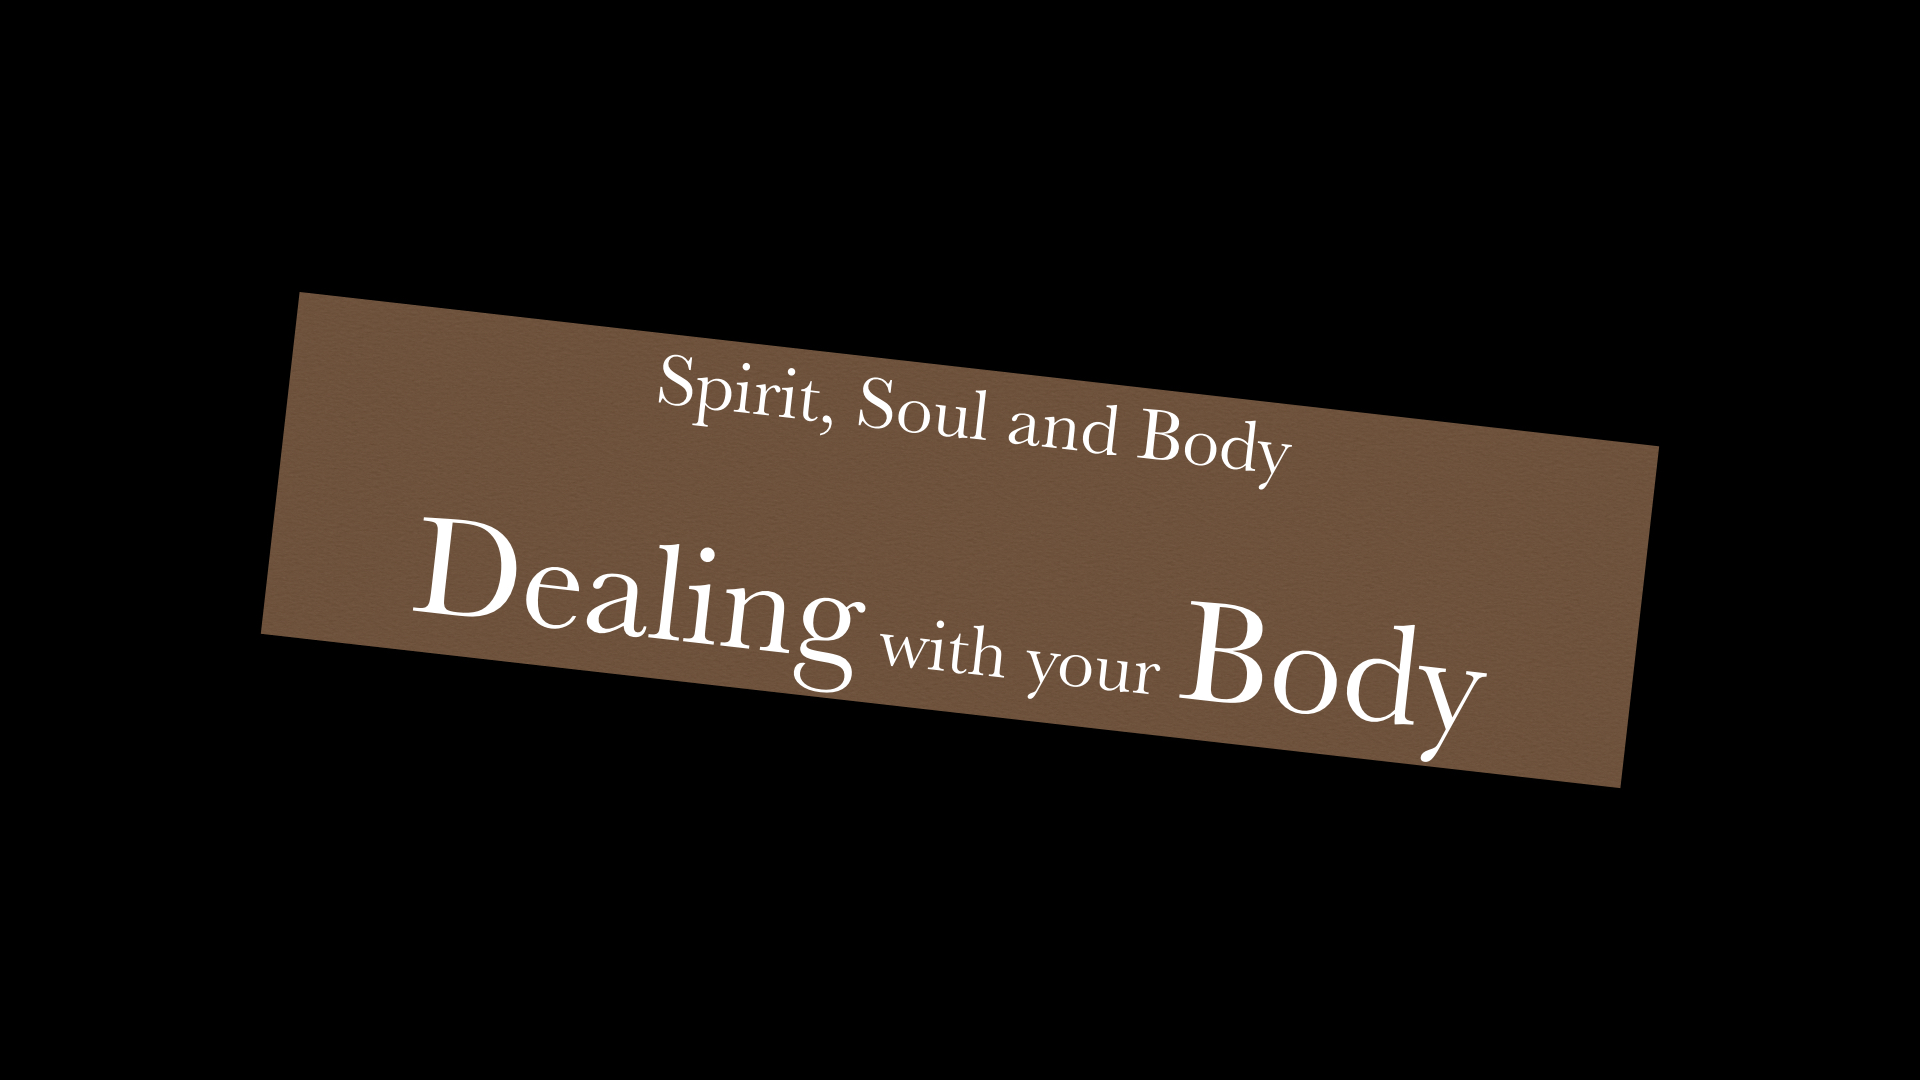 Dealing with Your Body  7212019 84601 AM